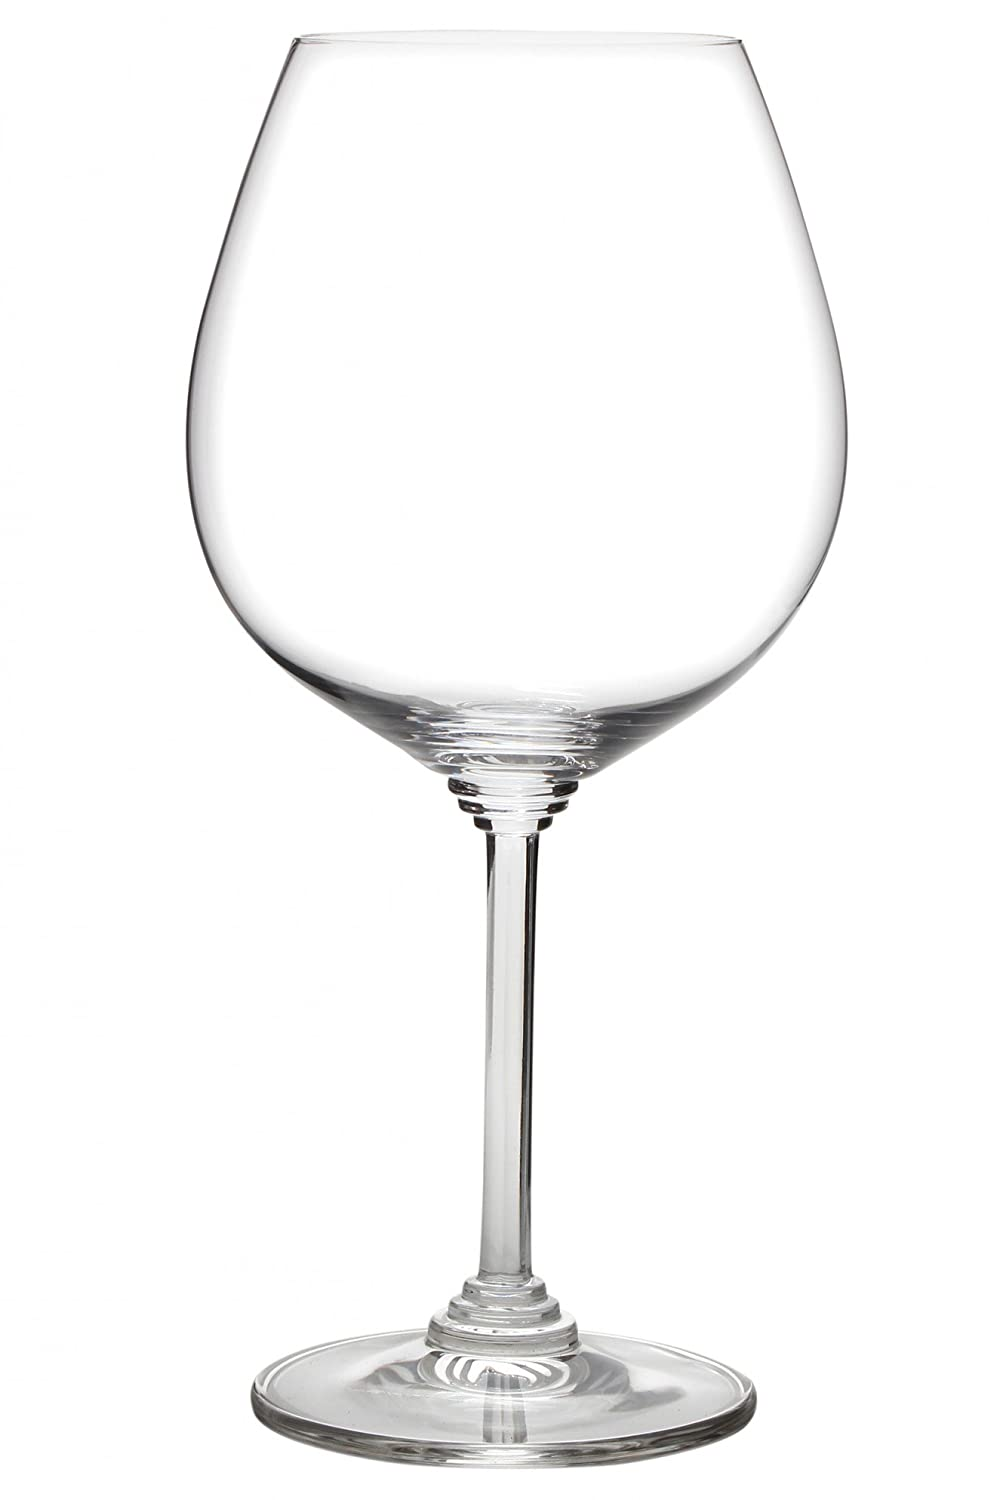 ff9544de1ff Riedel Wine Series Crystal Pinot/Nebbiolo Wine Glass, Set of 2